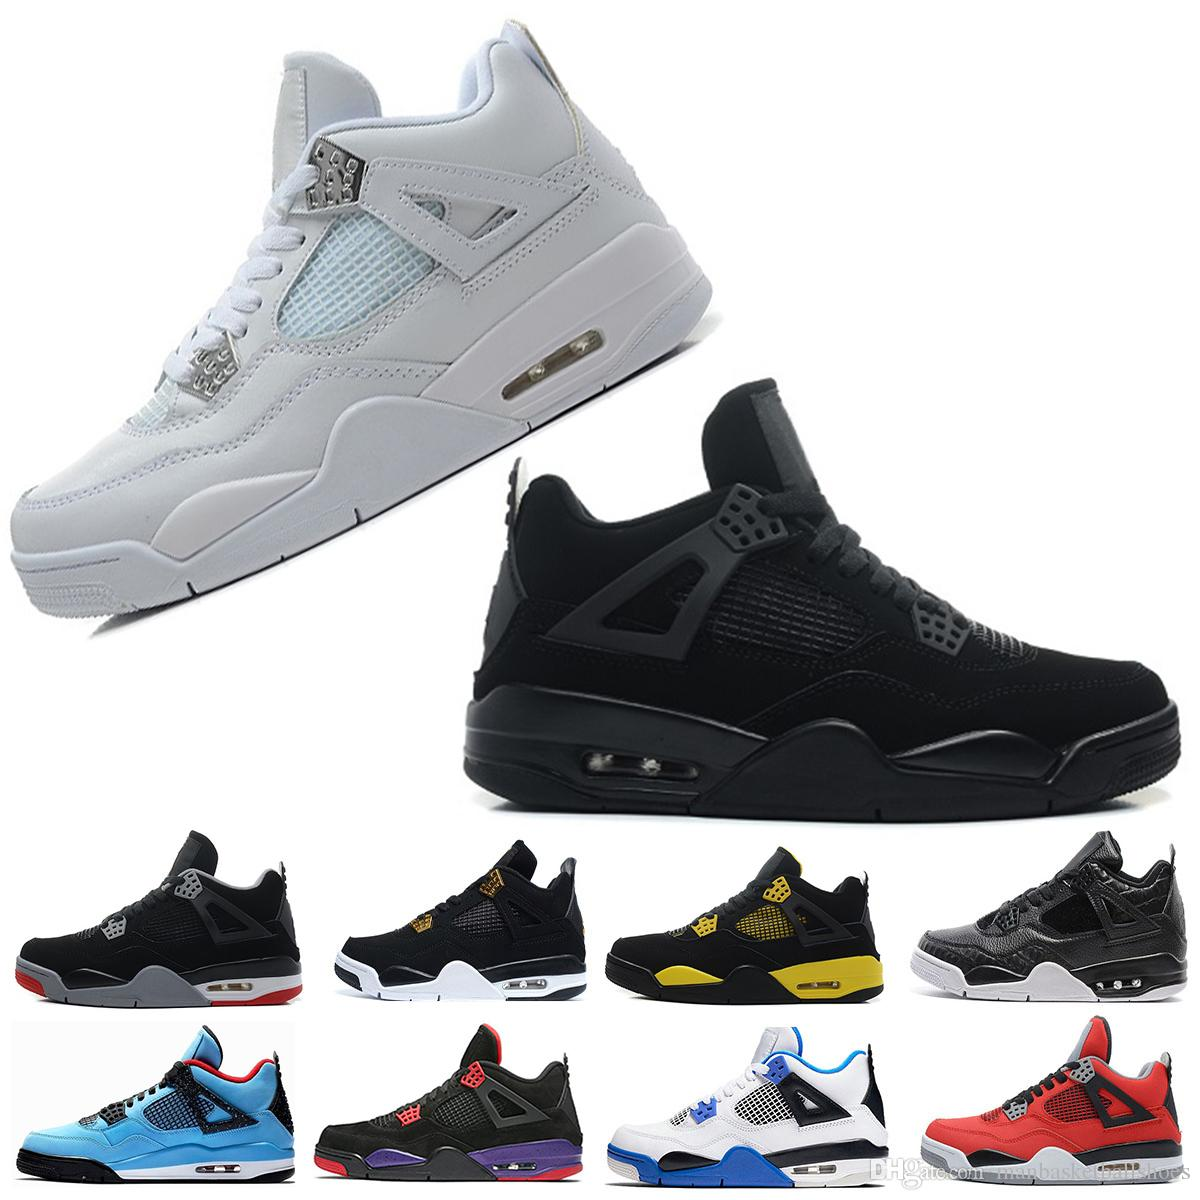 b1c0e405af5 Man Basketball Shoes 4 4S Pure Money Bred Travis RAPTORS White Cement  Premium Black THUNDER Fire Red Sports Man Designer Sneakers Size 8 13  Sneakers Sale ...